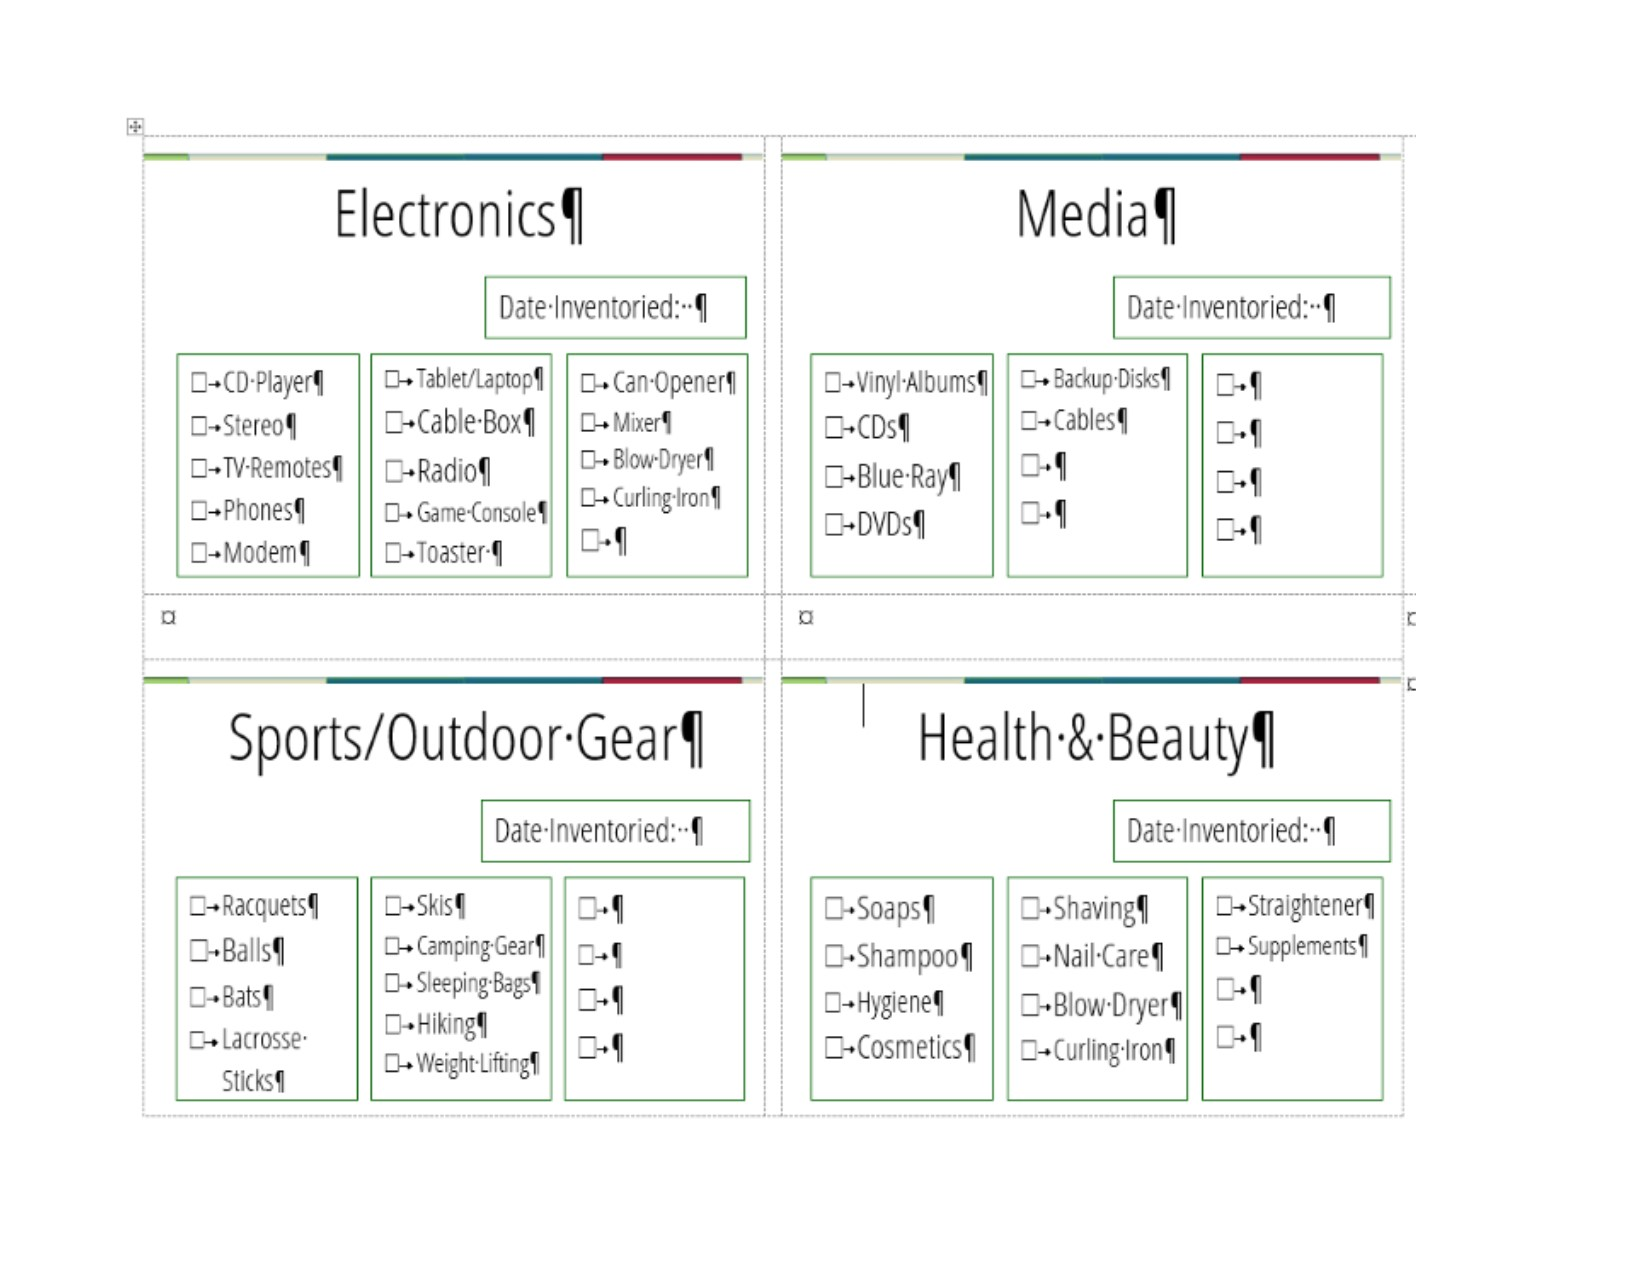 media health and beauty, electronics, and sports jpg.jpg